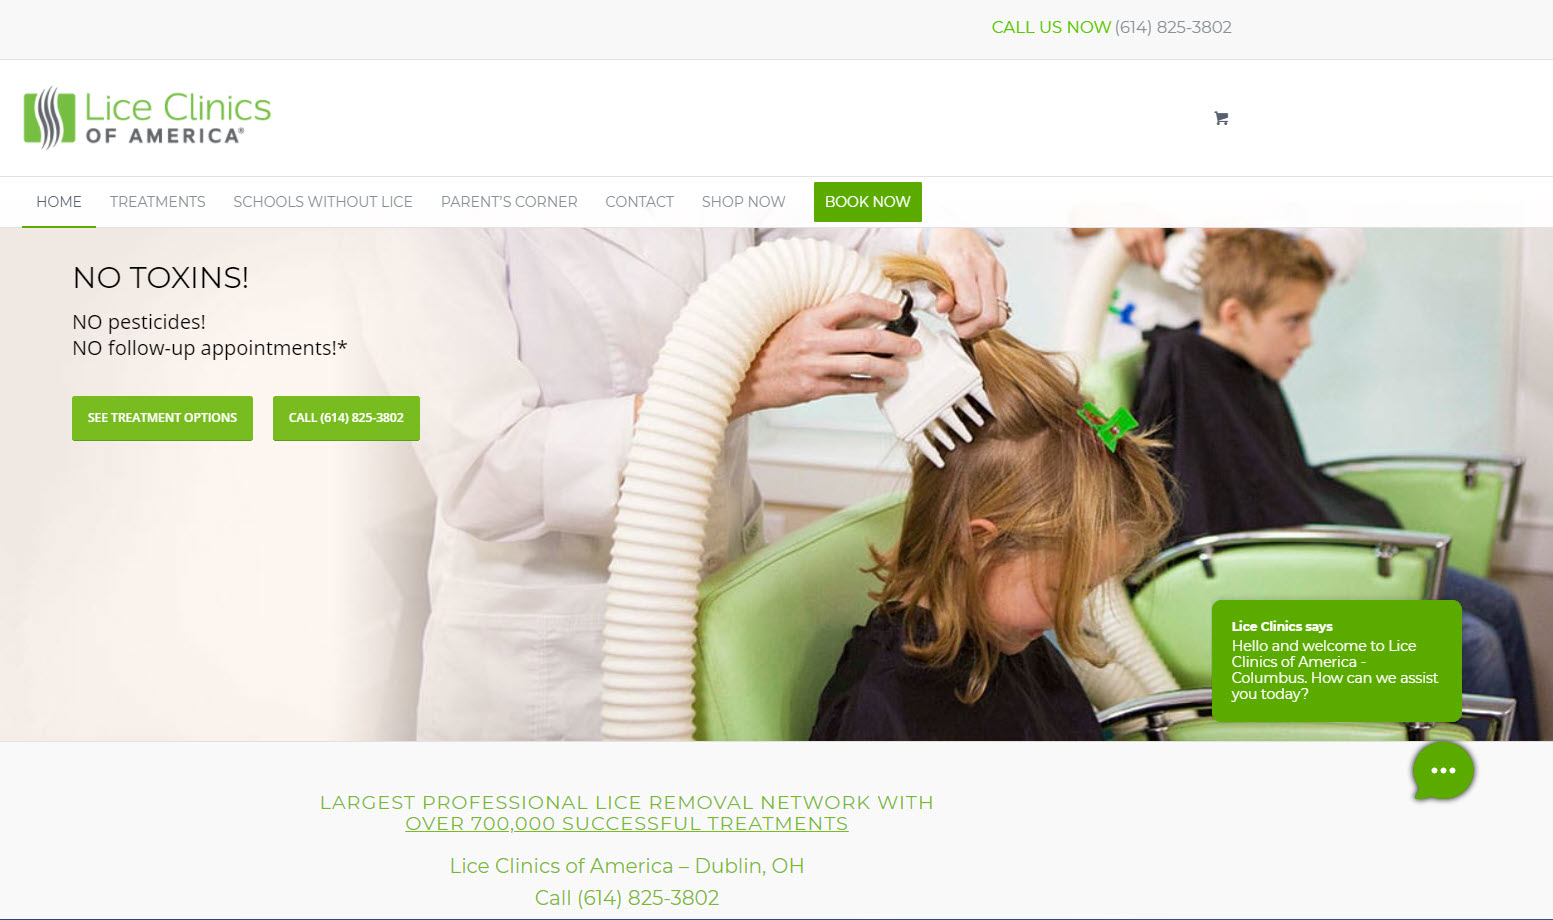 Proactive chat message on Lice Clinics Dublin OH website by Rake